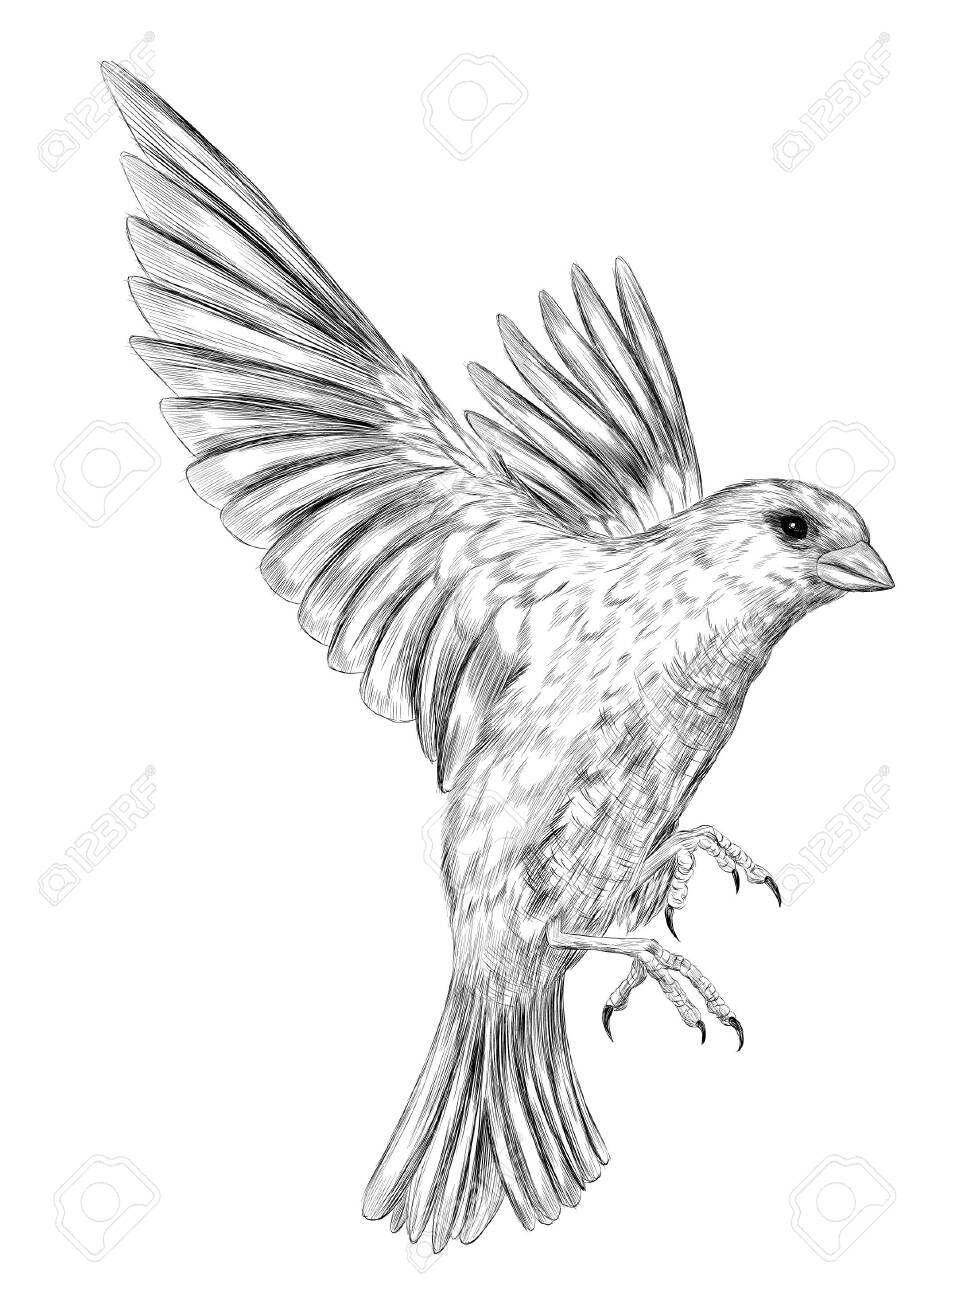 chickadee bird black and white vector graphics of coloring the sketch - 153568197